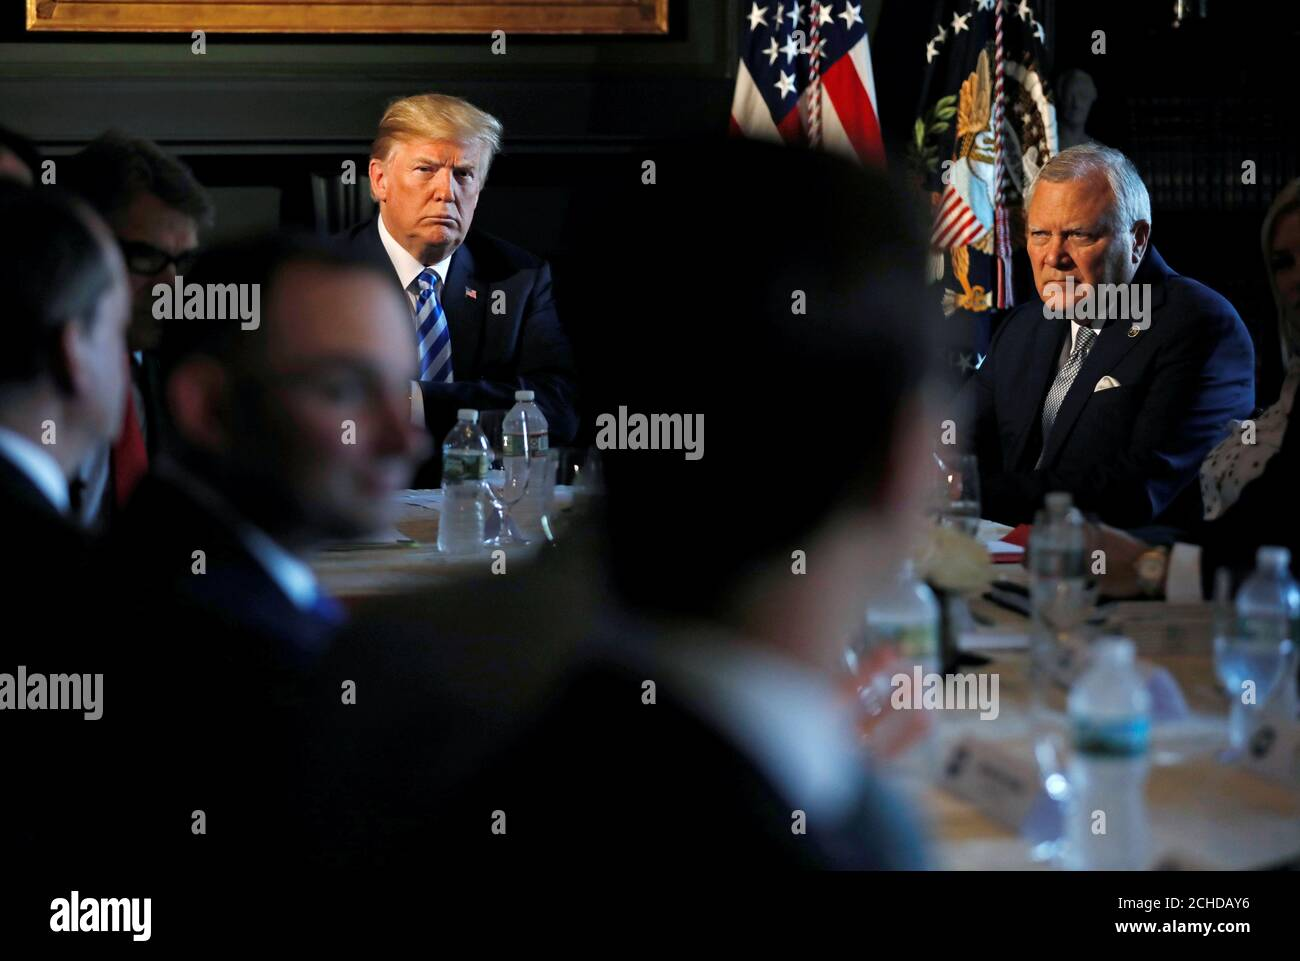 U.S. President Donald Trump and Governor Nathan Deal (R-GA) of Georgia participate in a roundtable discussion with state leaders on prison reform in Berkeley Heights, New Jersey, U.S., August 9, 2018.  REUTERS/Carlos Barria Stock Photo